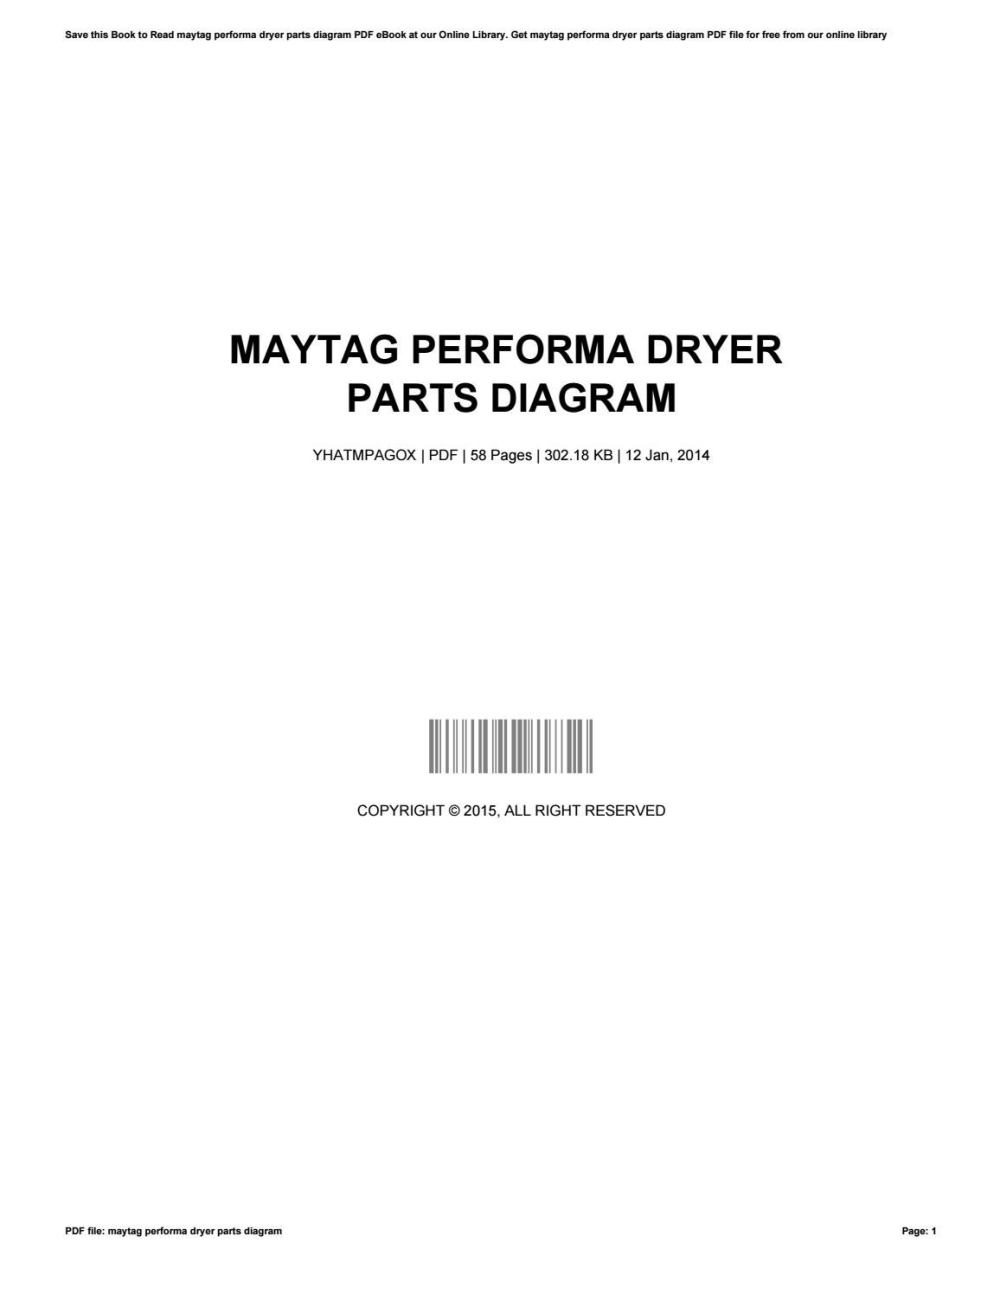 medium resolution of maytag performa dryer parts diagram by bradleygannaway1966